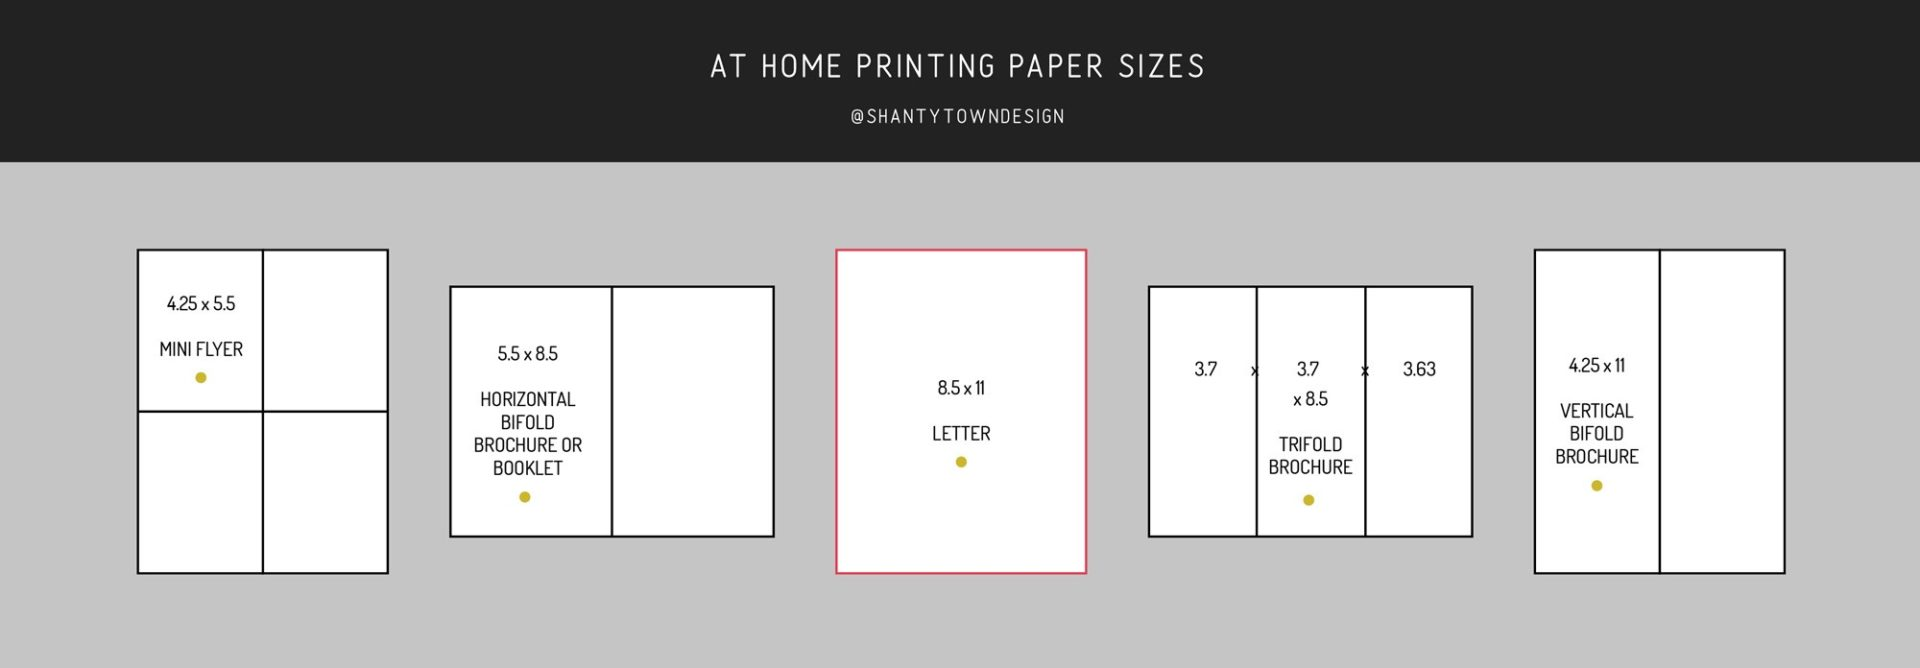 at home paper printing size guide